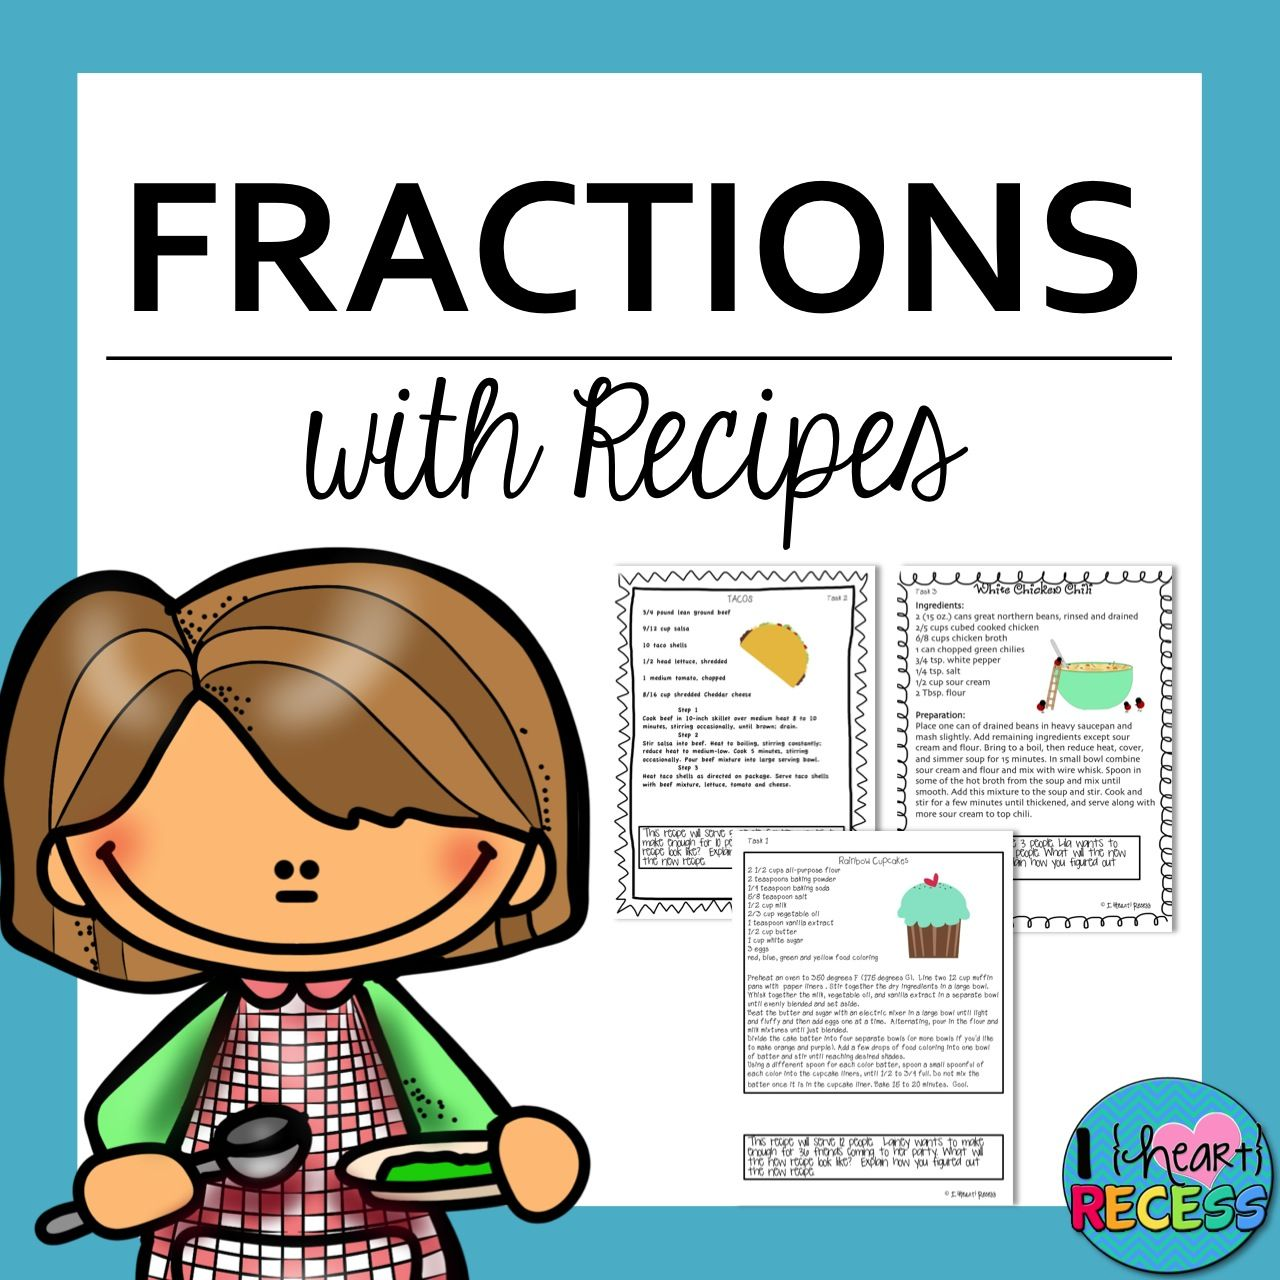 Use The Recipe Task Cards To Teach Or Practice Ccs 4 4